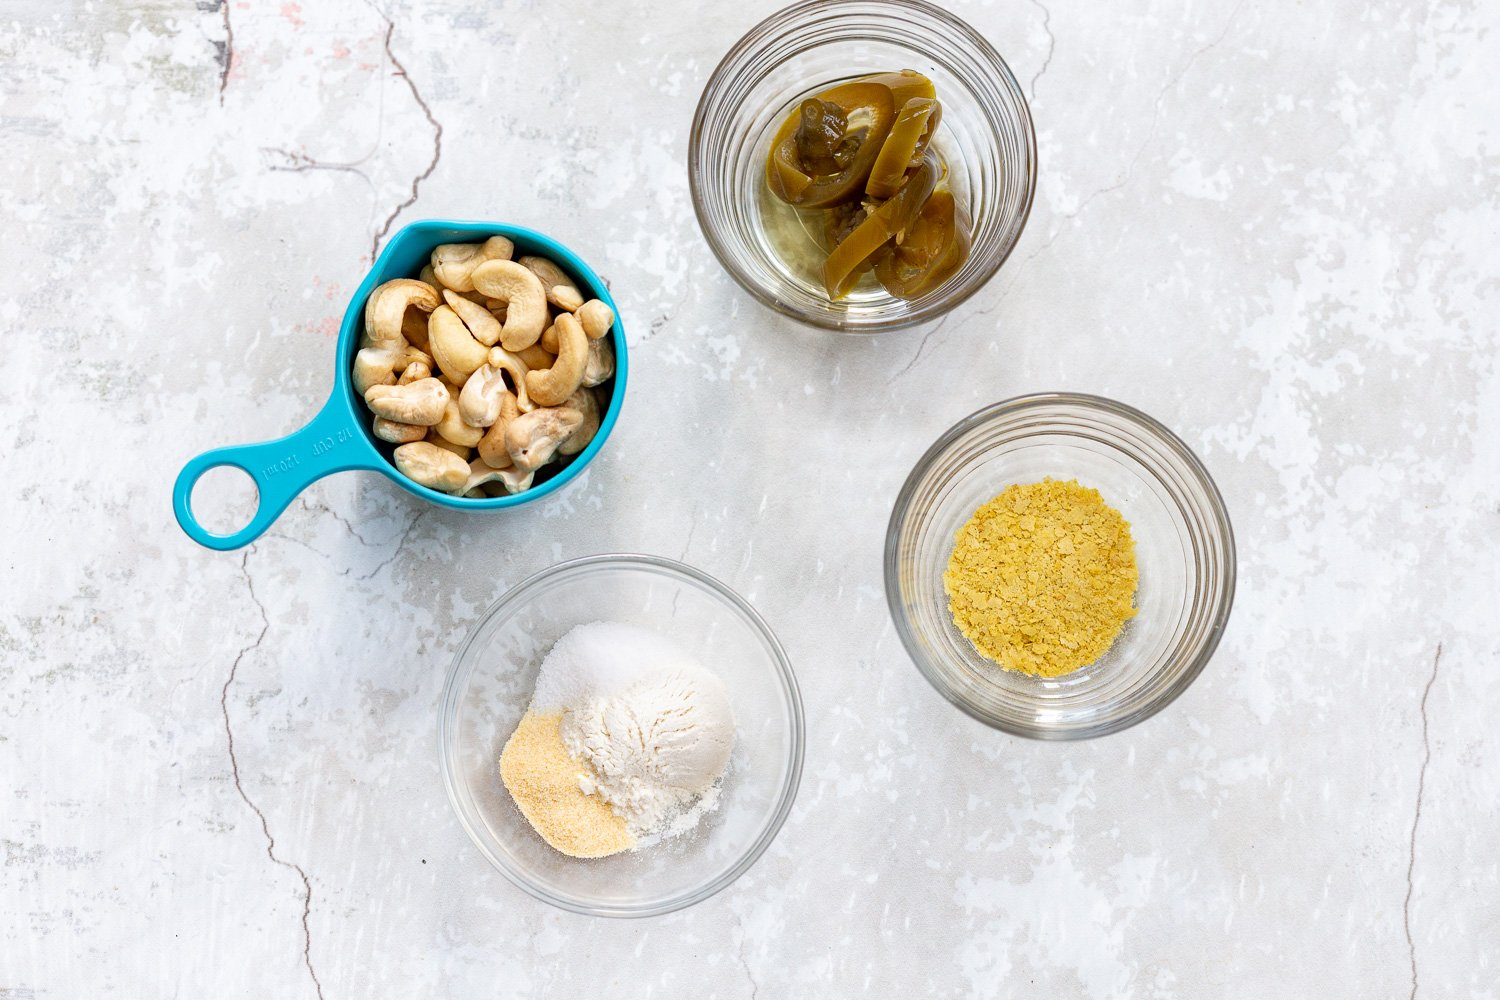 Ingredients for Vegan Jalapeno Cream Sauce in bowls and measuring cups